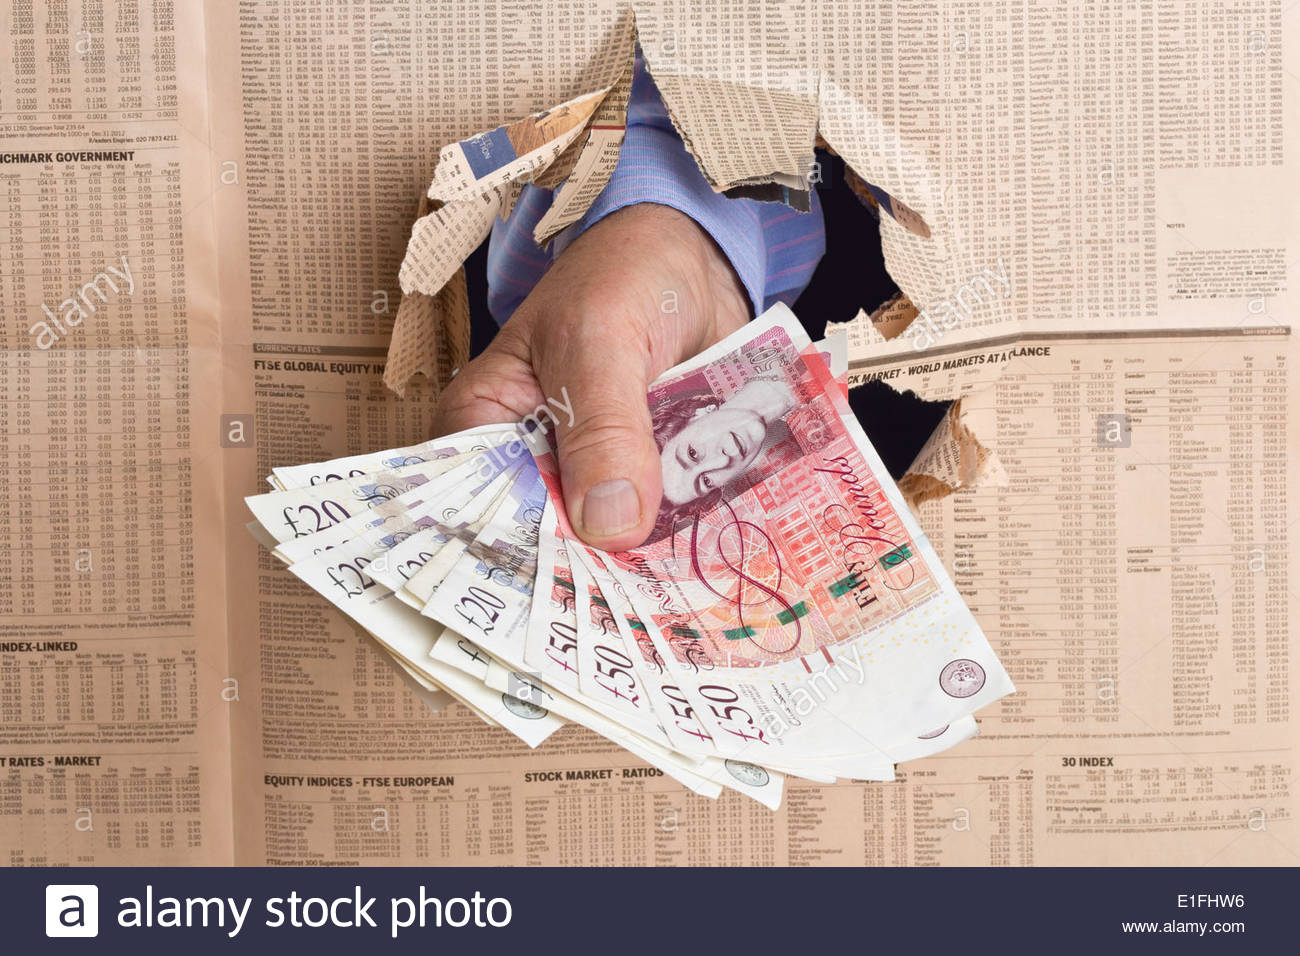 Mans hand holding sterling banknotes being thrust through a financial newspaper. - Stock Image